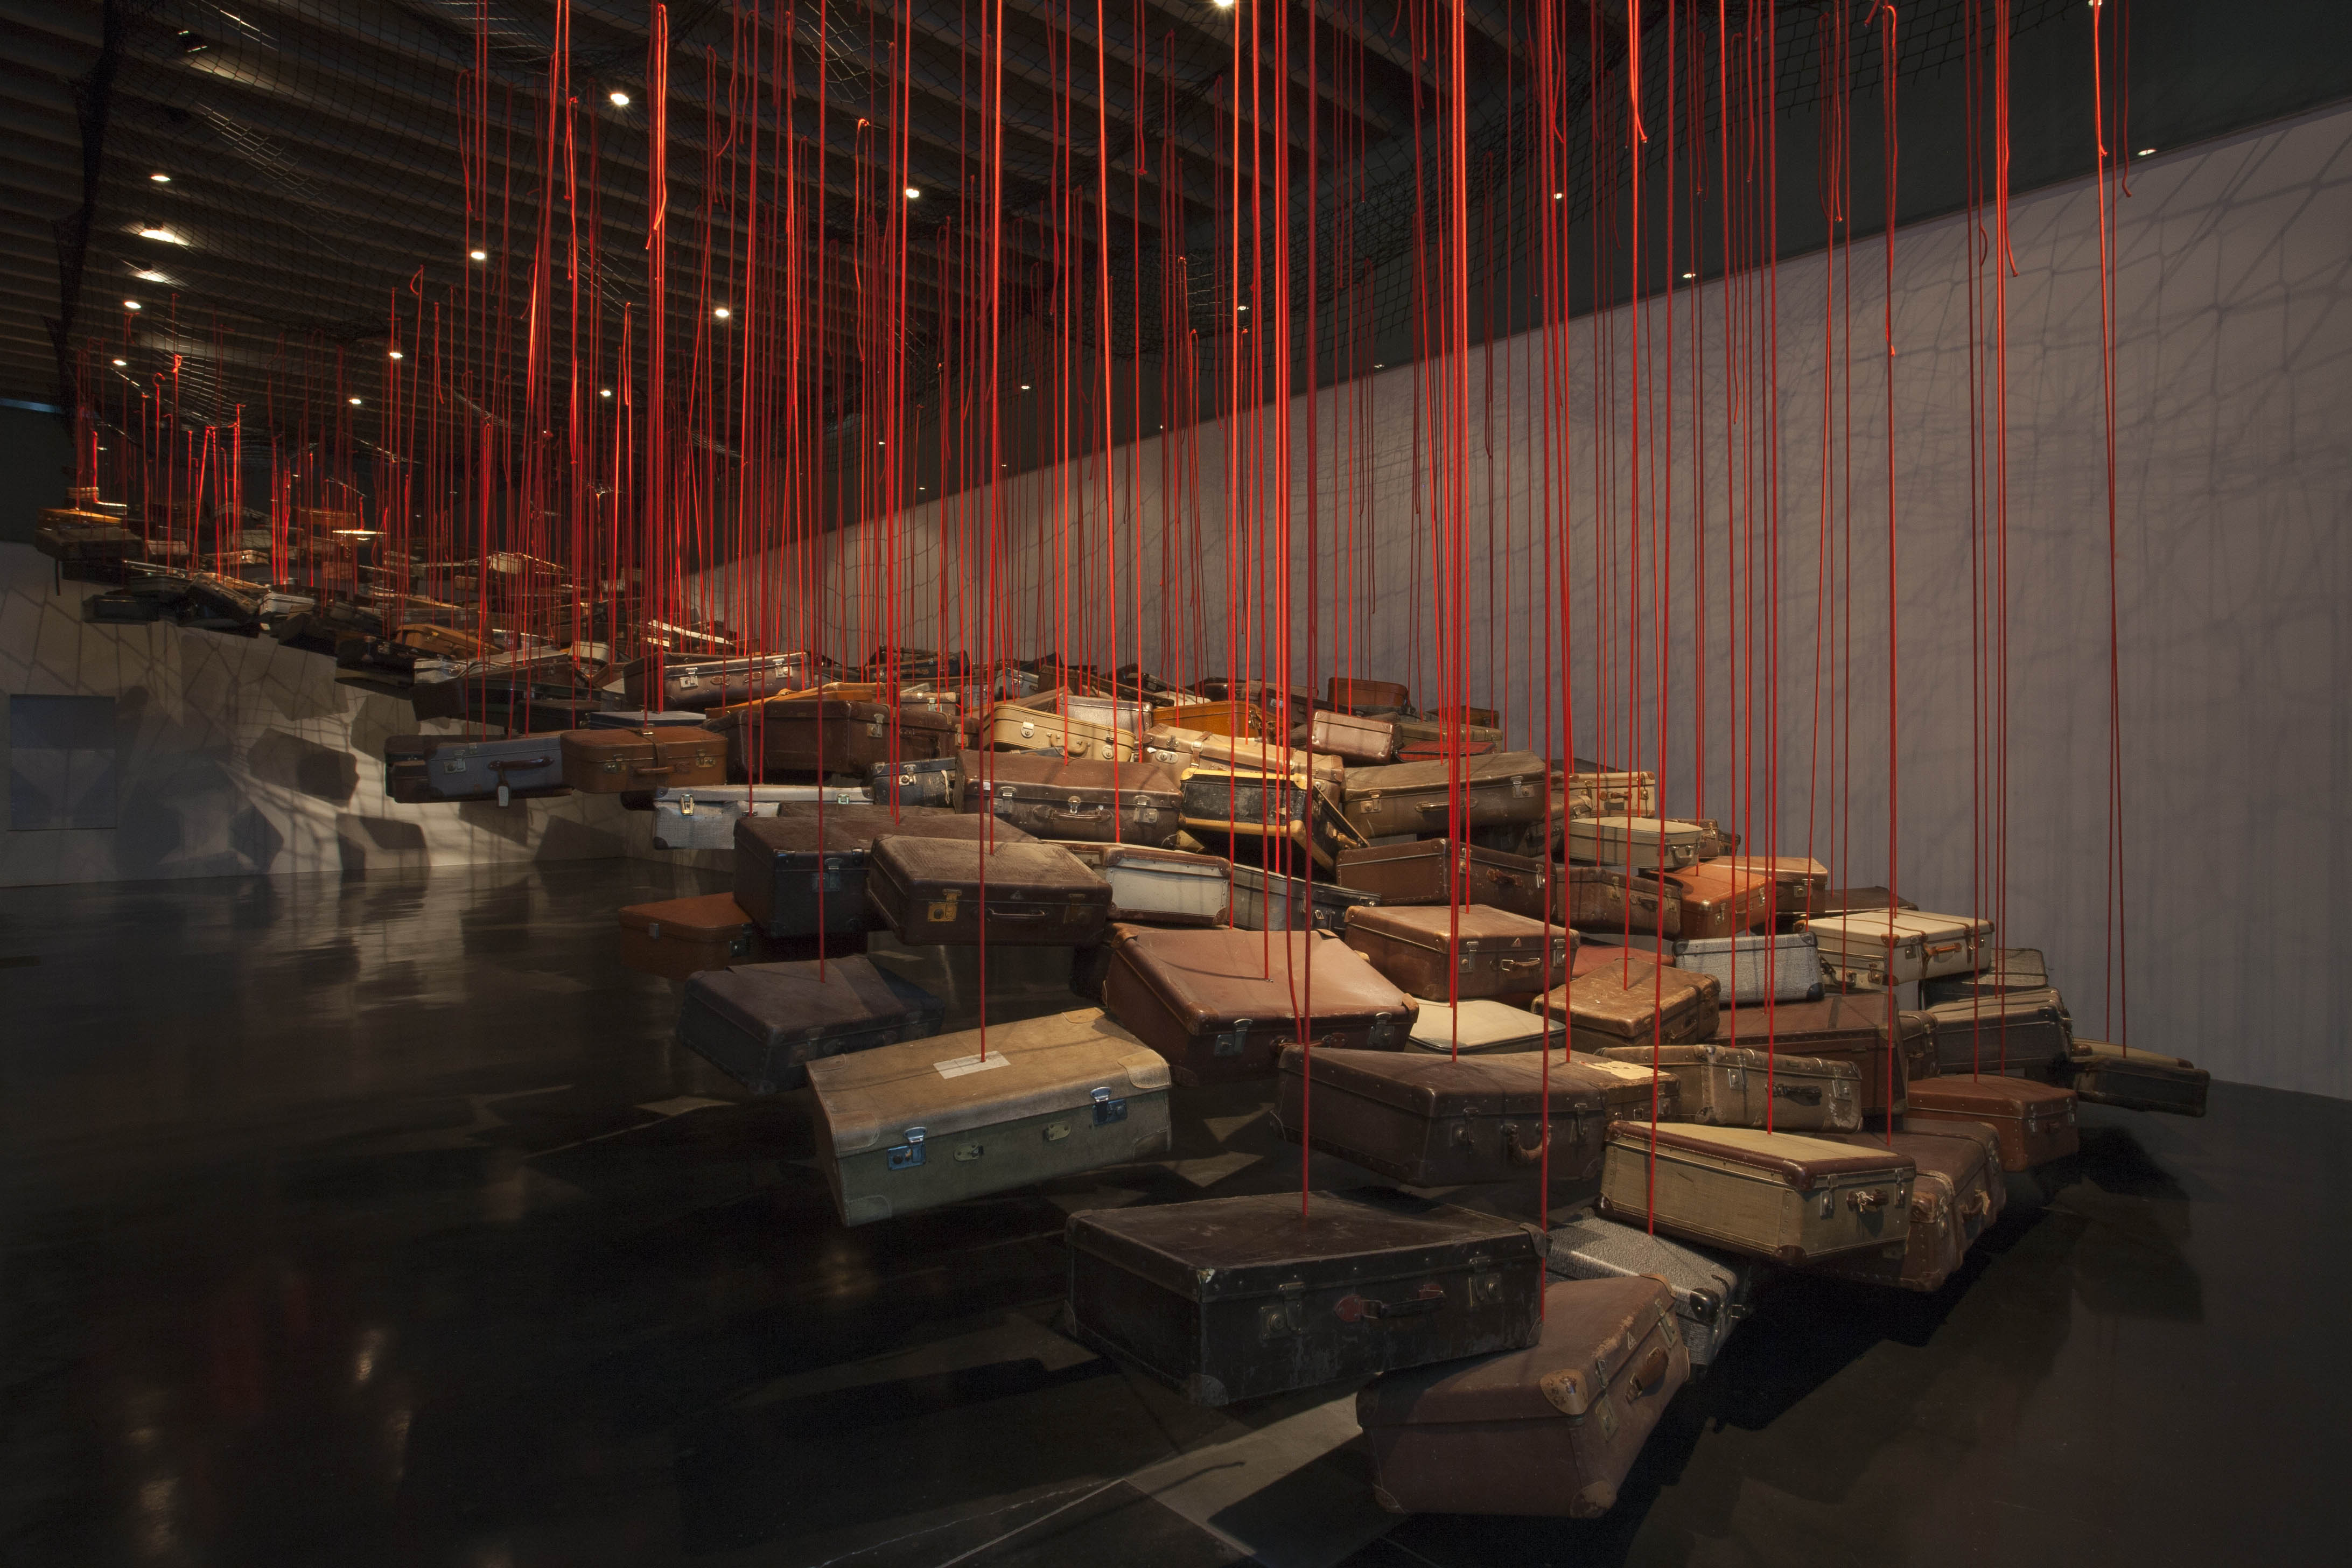 Are You Ready for Art Basel Hong Kong 2019? art basel hong kong 2019 Are You Ready for Art Basel Hong Kong 2019? Chiaru Shiota Accumulations Searching for destination 2014 2016 One of the favorites artists at Art Basel Hong Kong